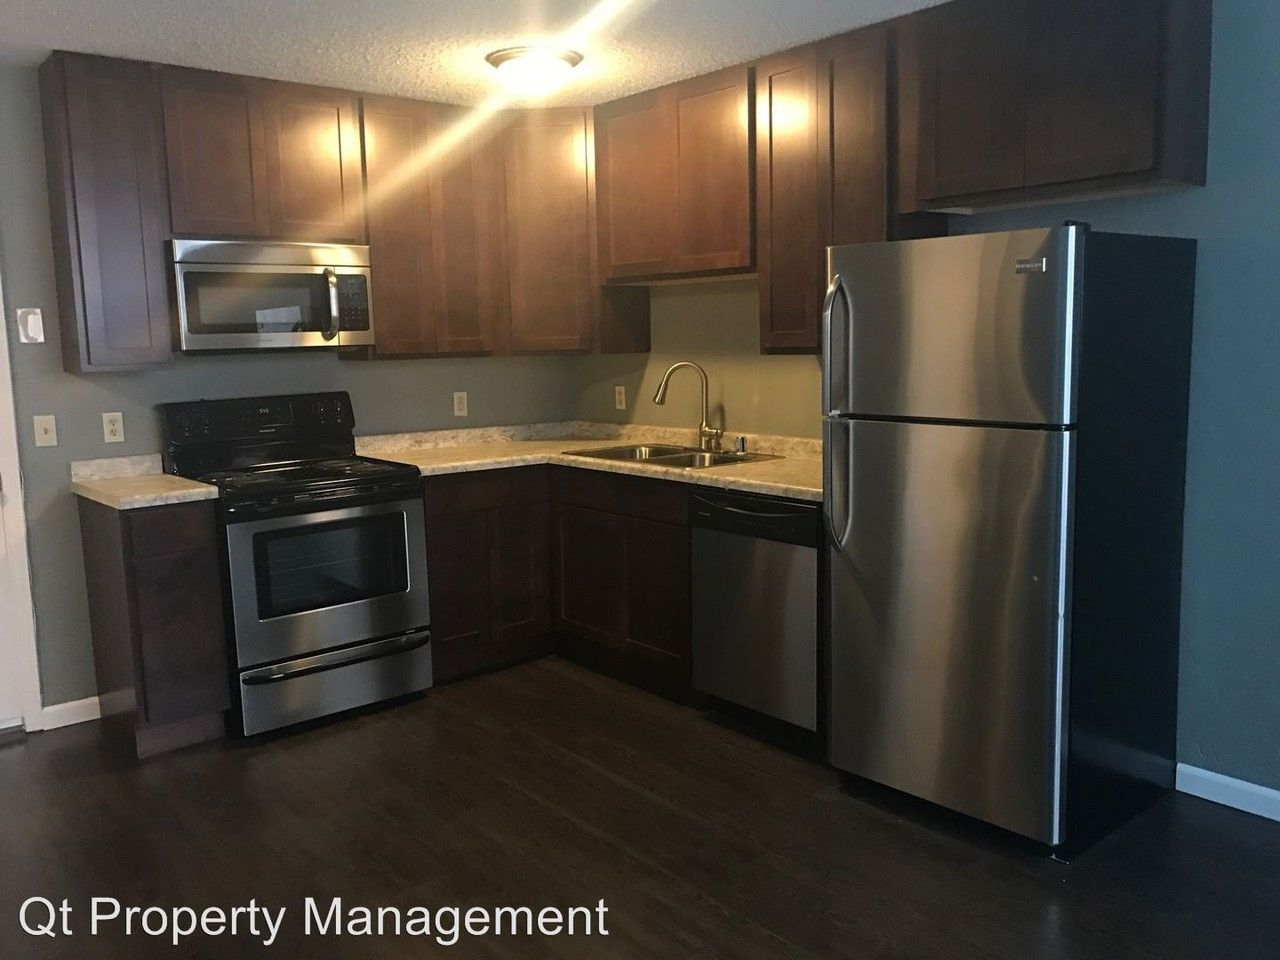 2101 21st Avenue S Apartments For Rent 2101 21st Ave S